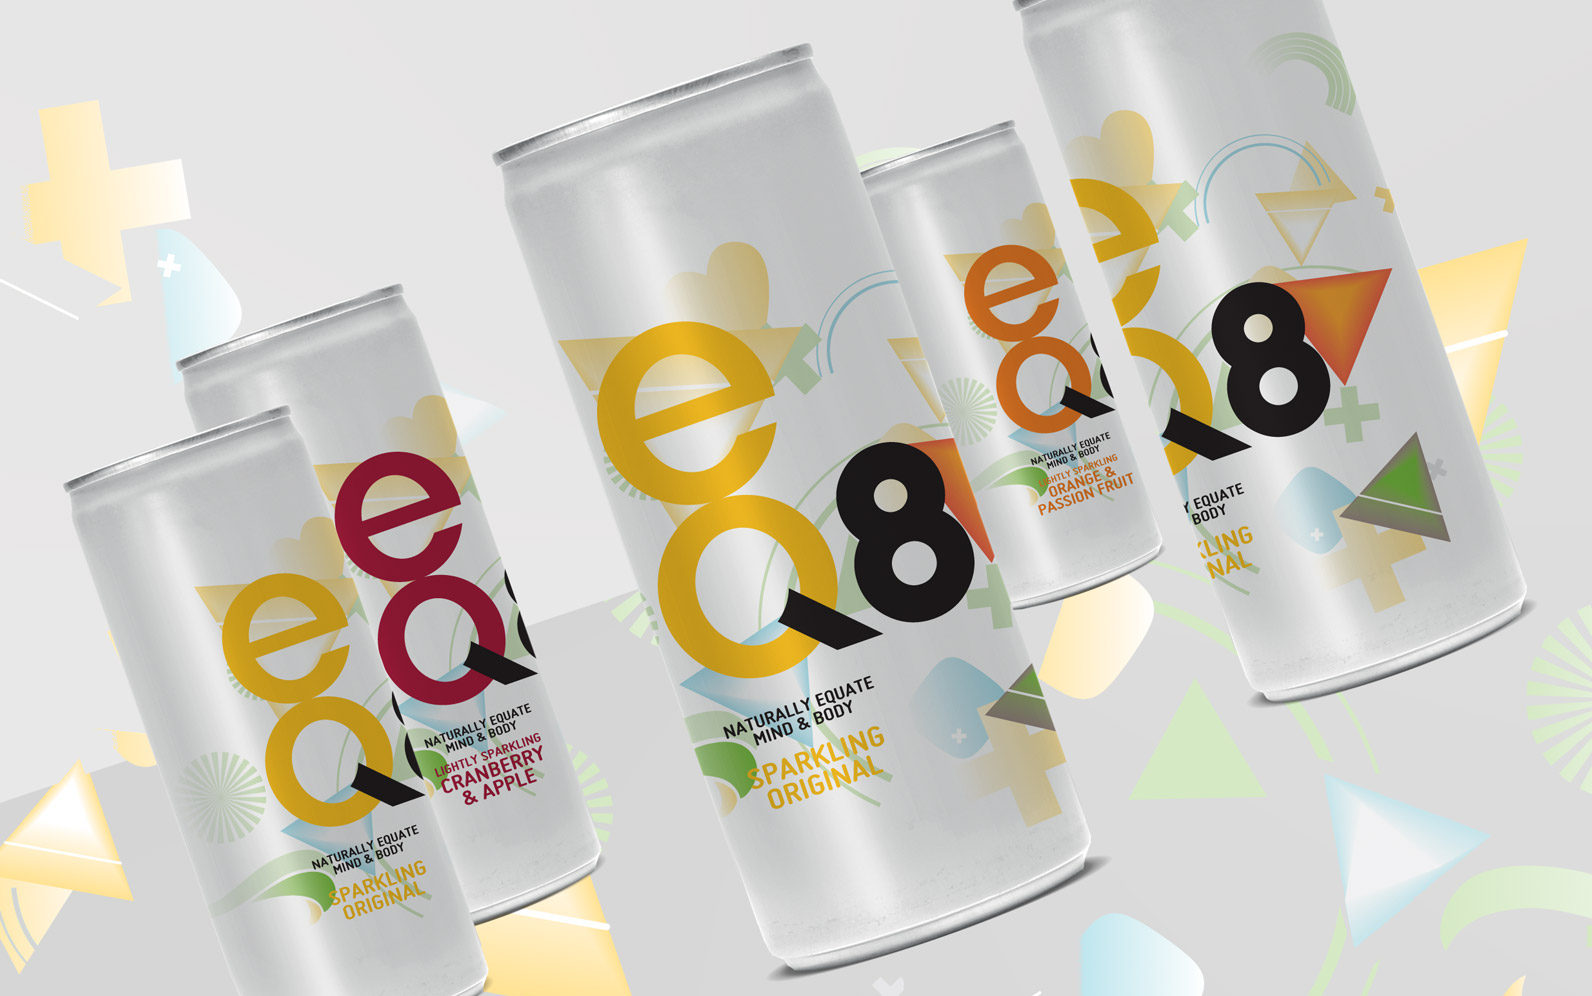 EQ8 packaging design